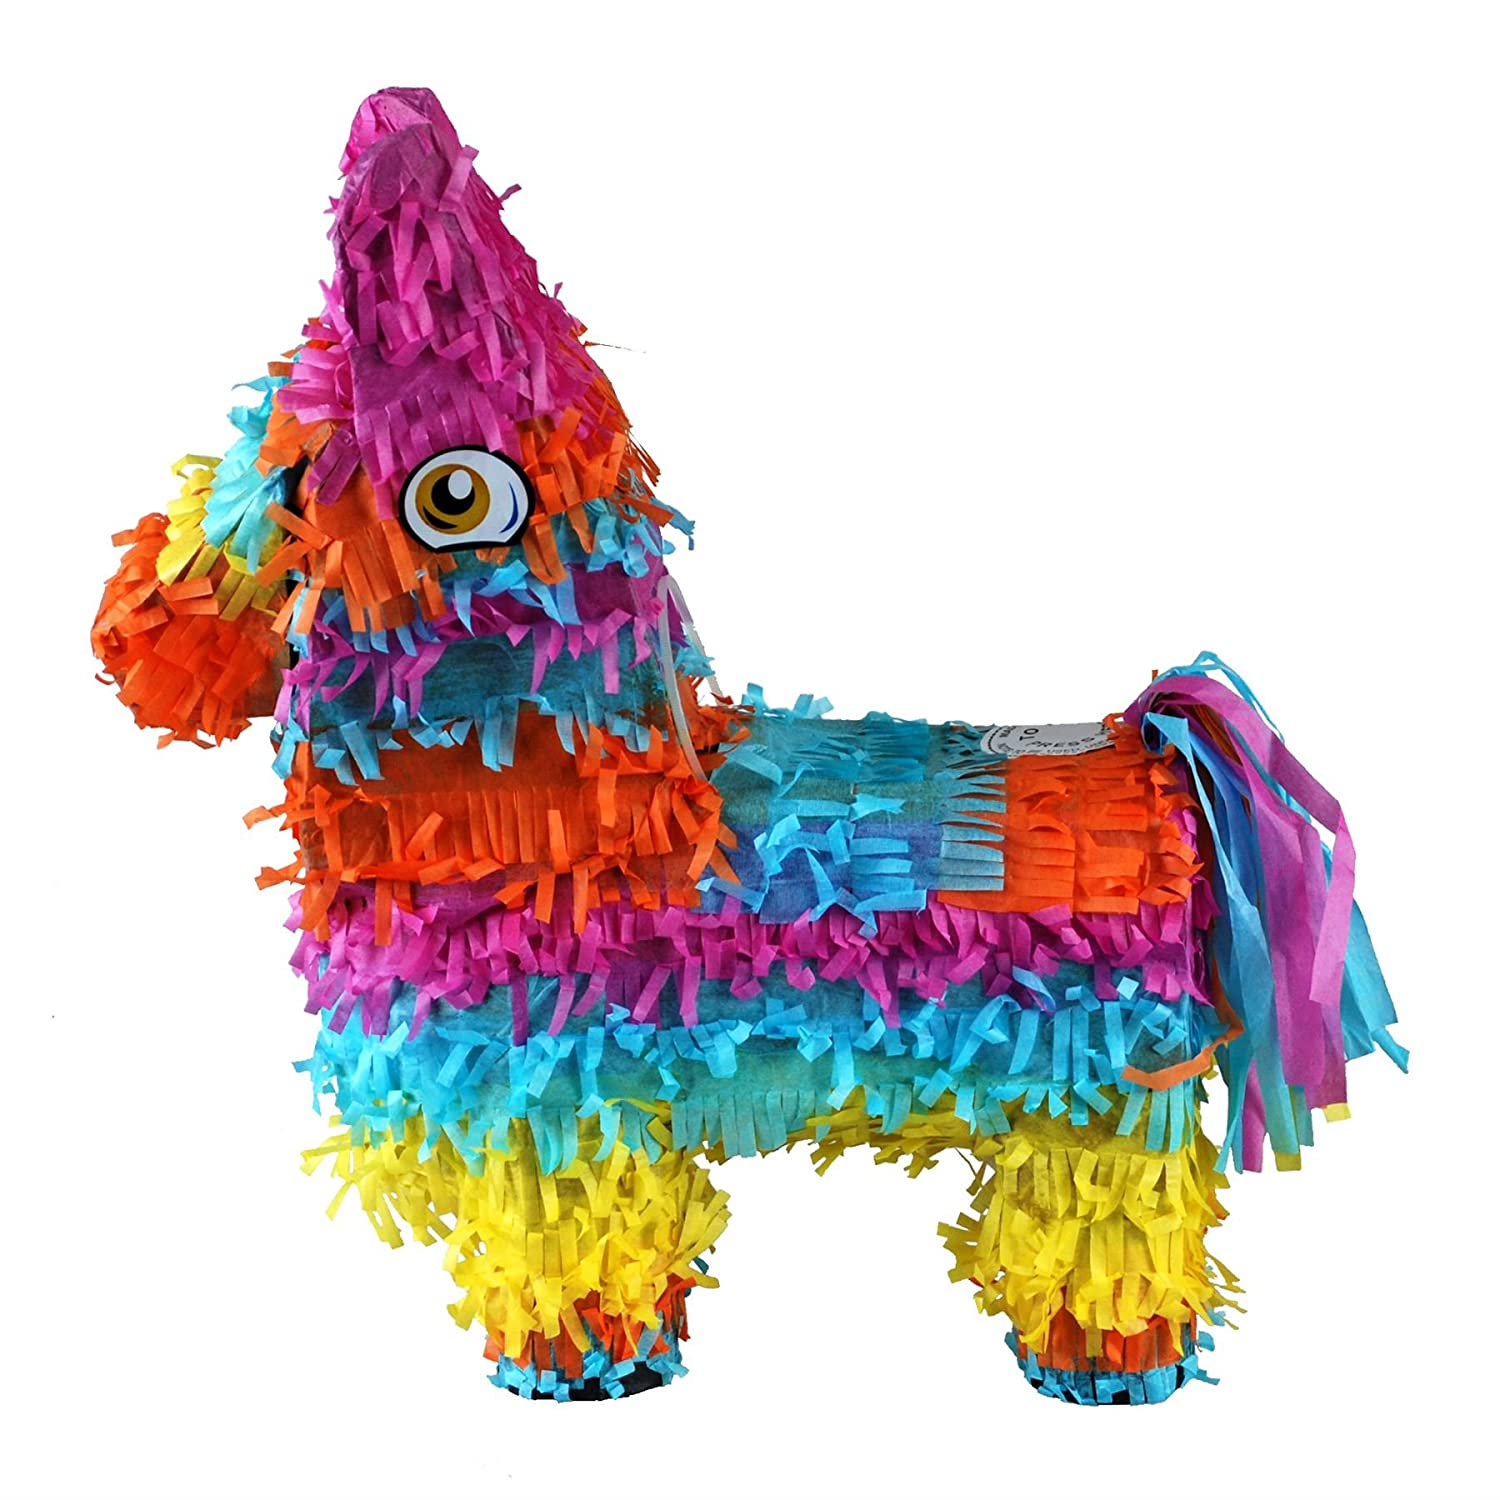 Fiestas and Celebrations 32cm x 41cm Ideal for Childrens Birthday Parties CrazyGadget/® Rainbow Pinata Donkey Mexican El Burro Small Party Accessories Sweets Favours Decoration Cinco De Mayo